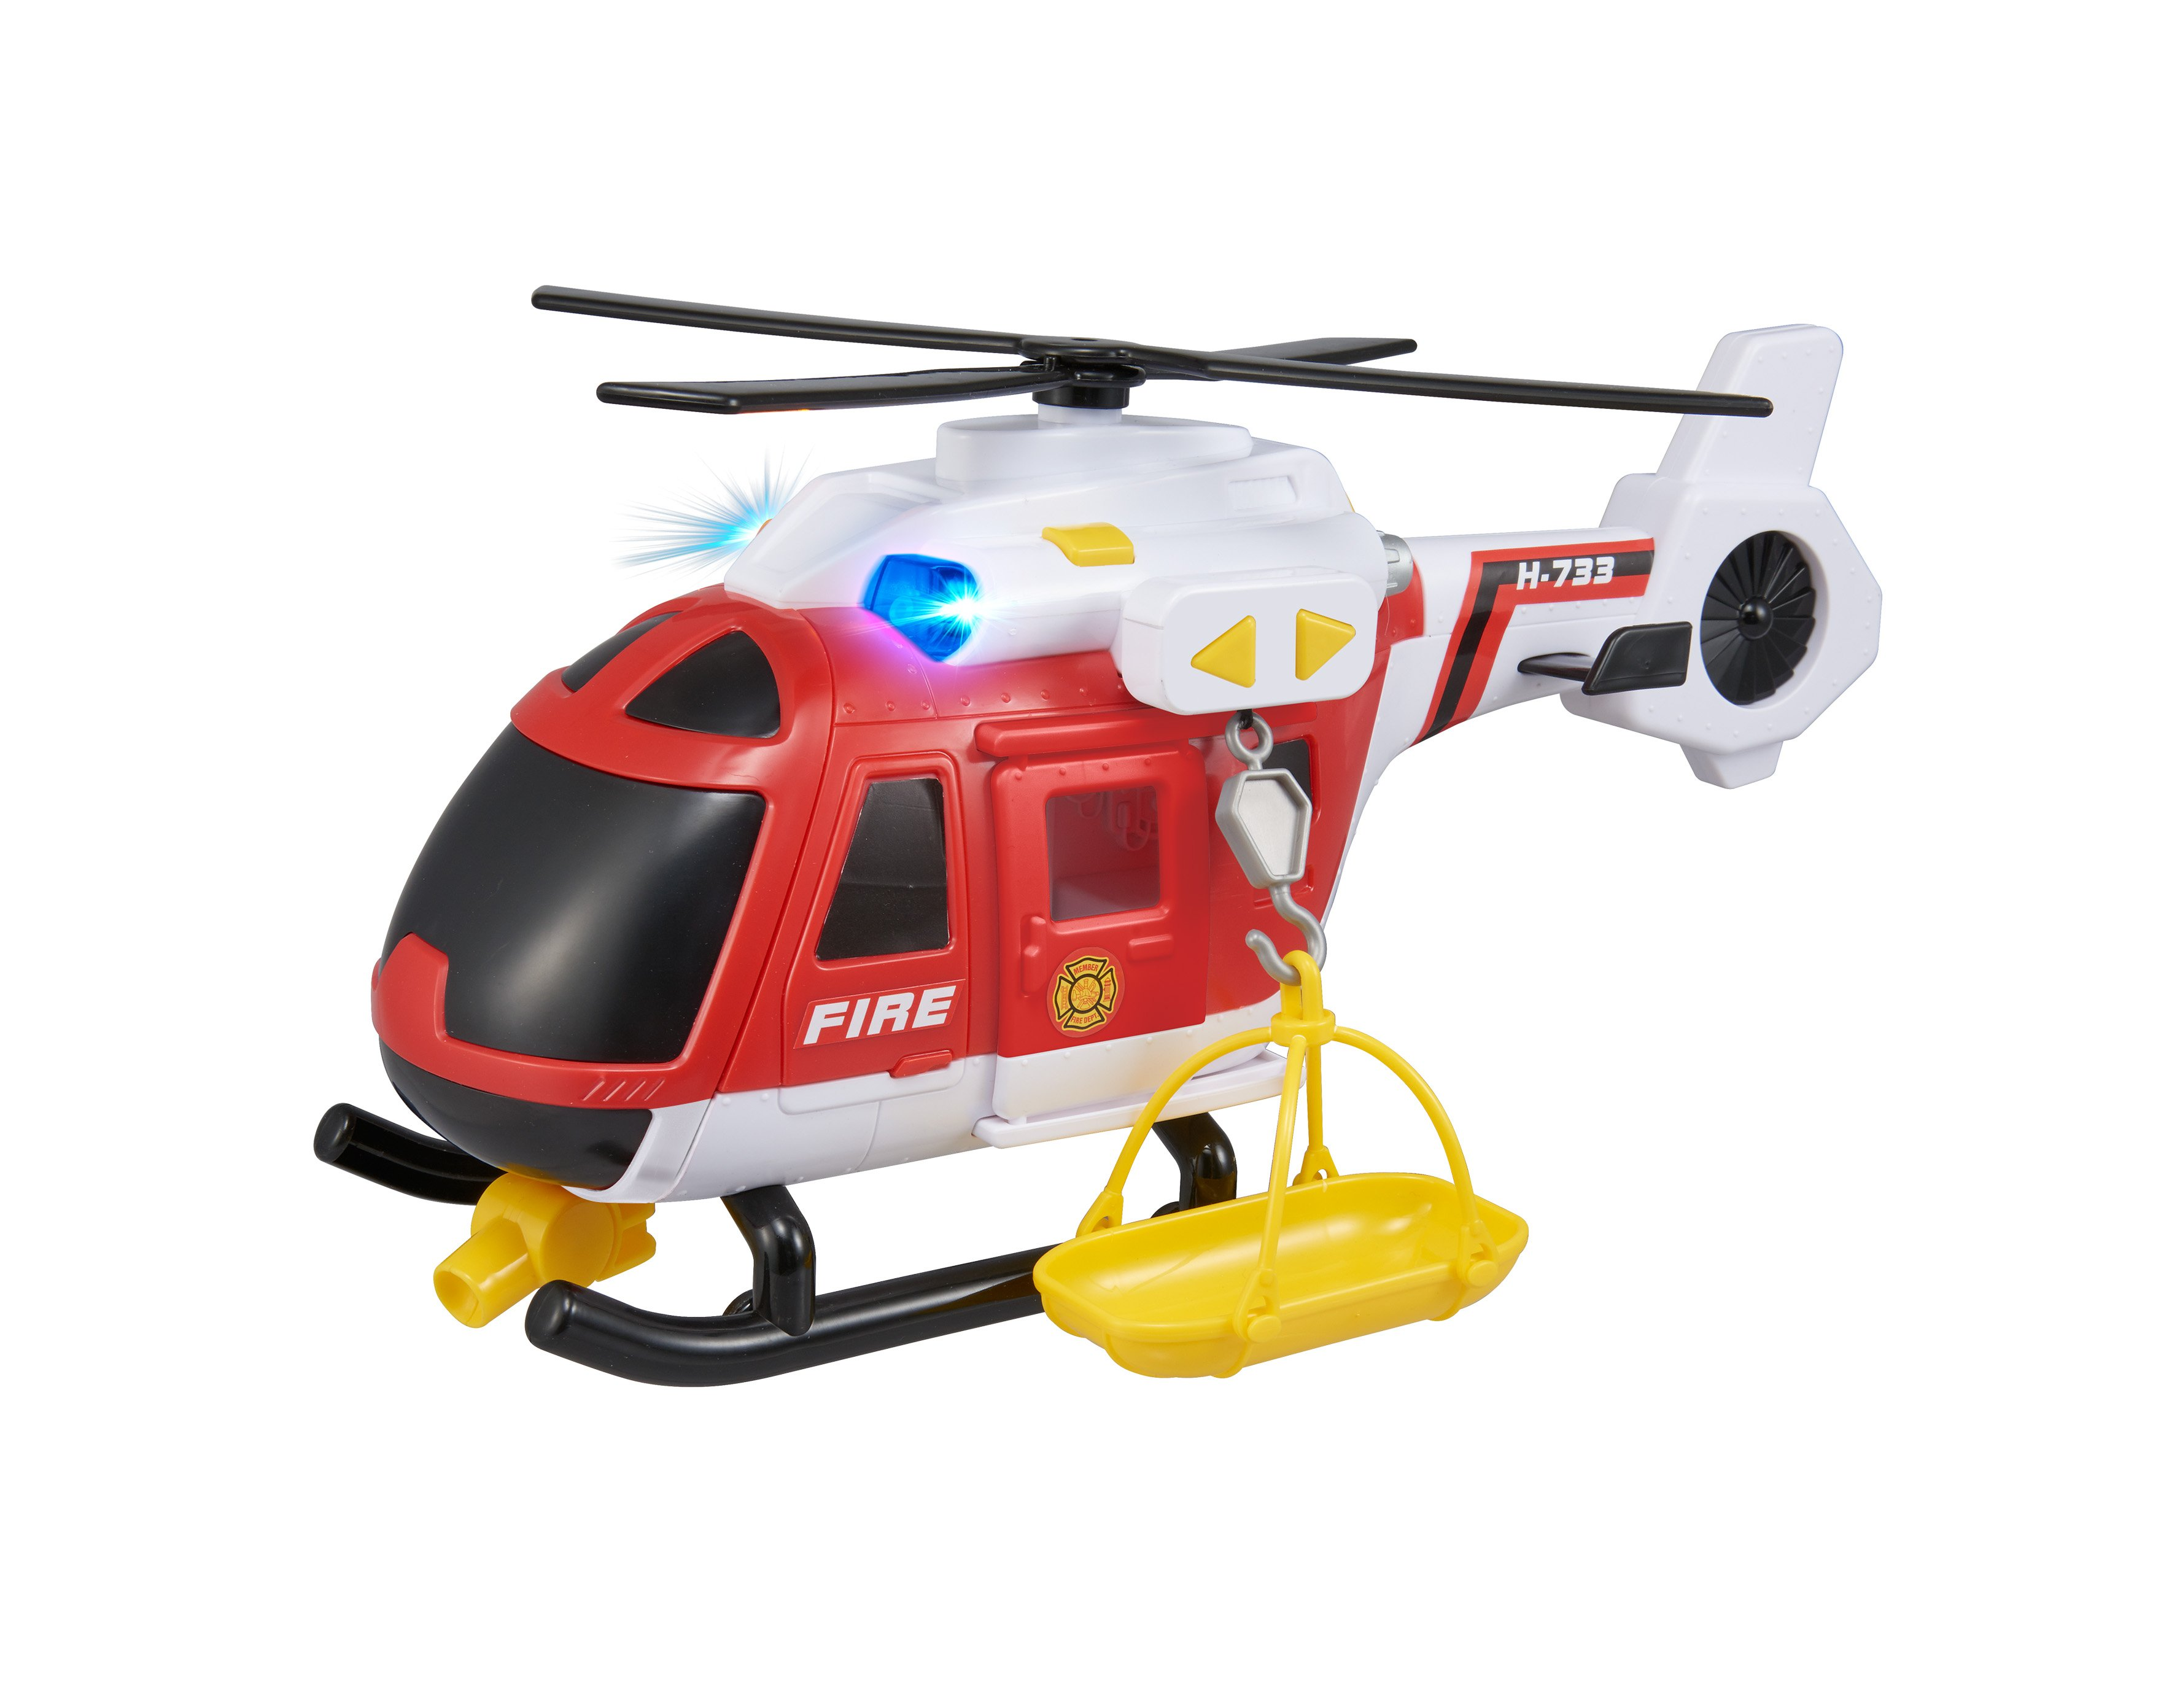 Teamsterz - Light and Sound Fire Helicopter (1416845)